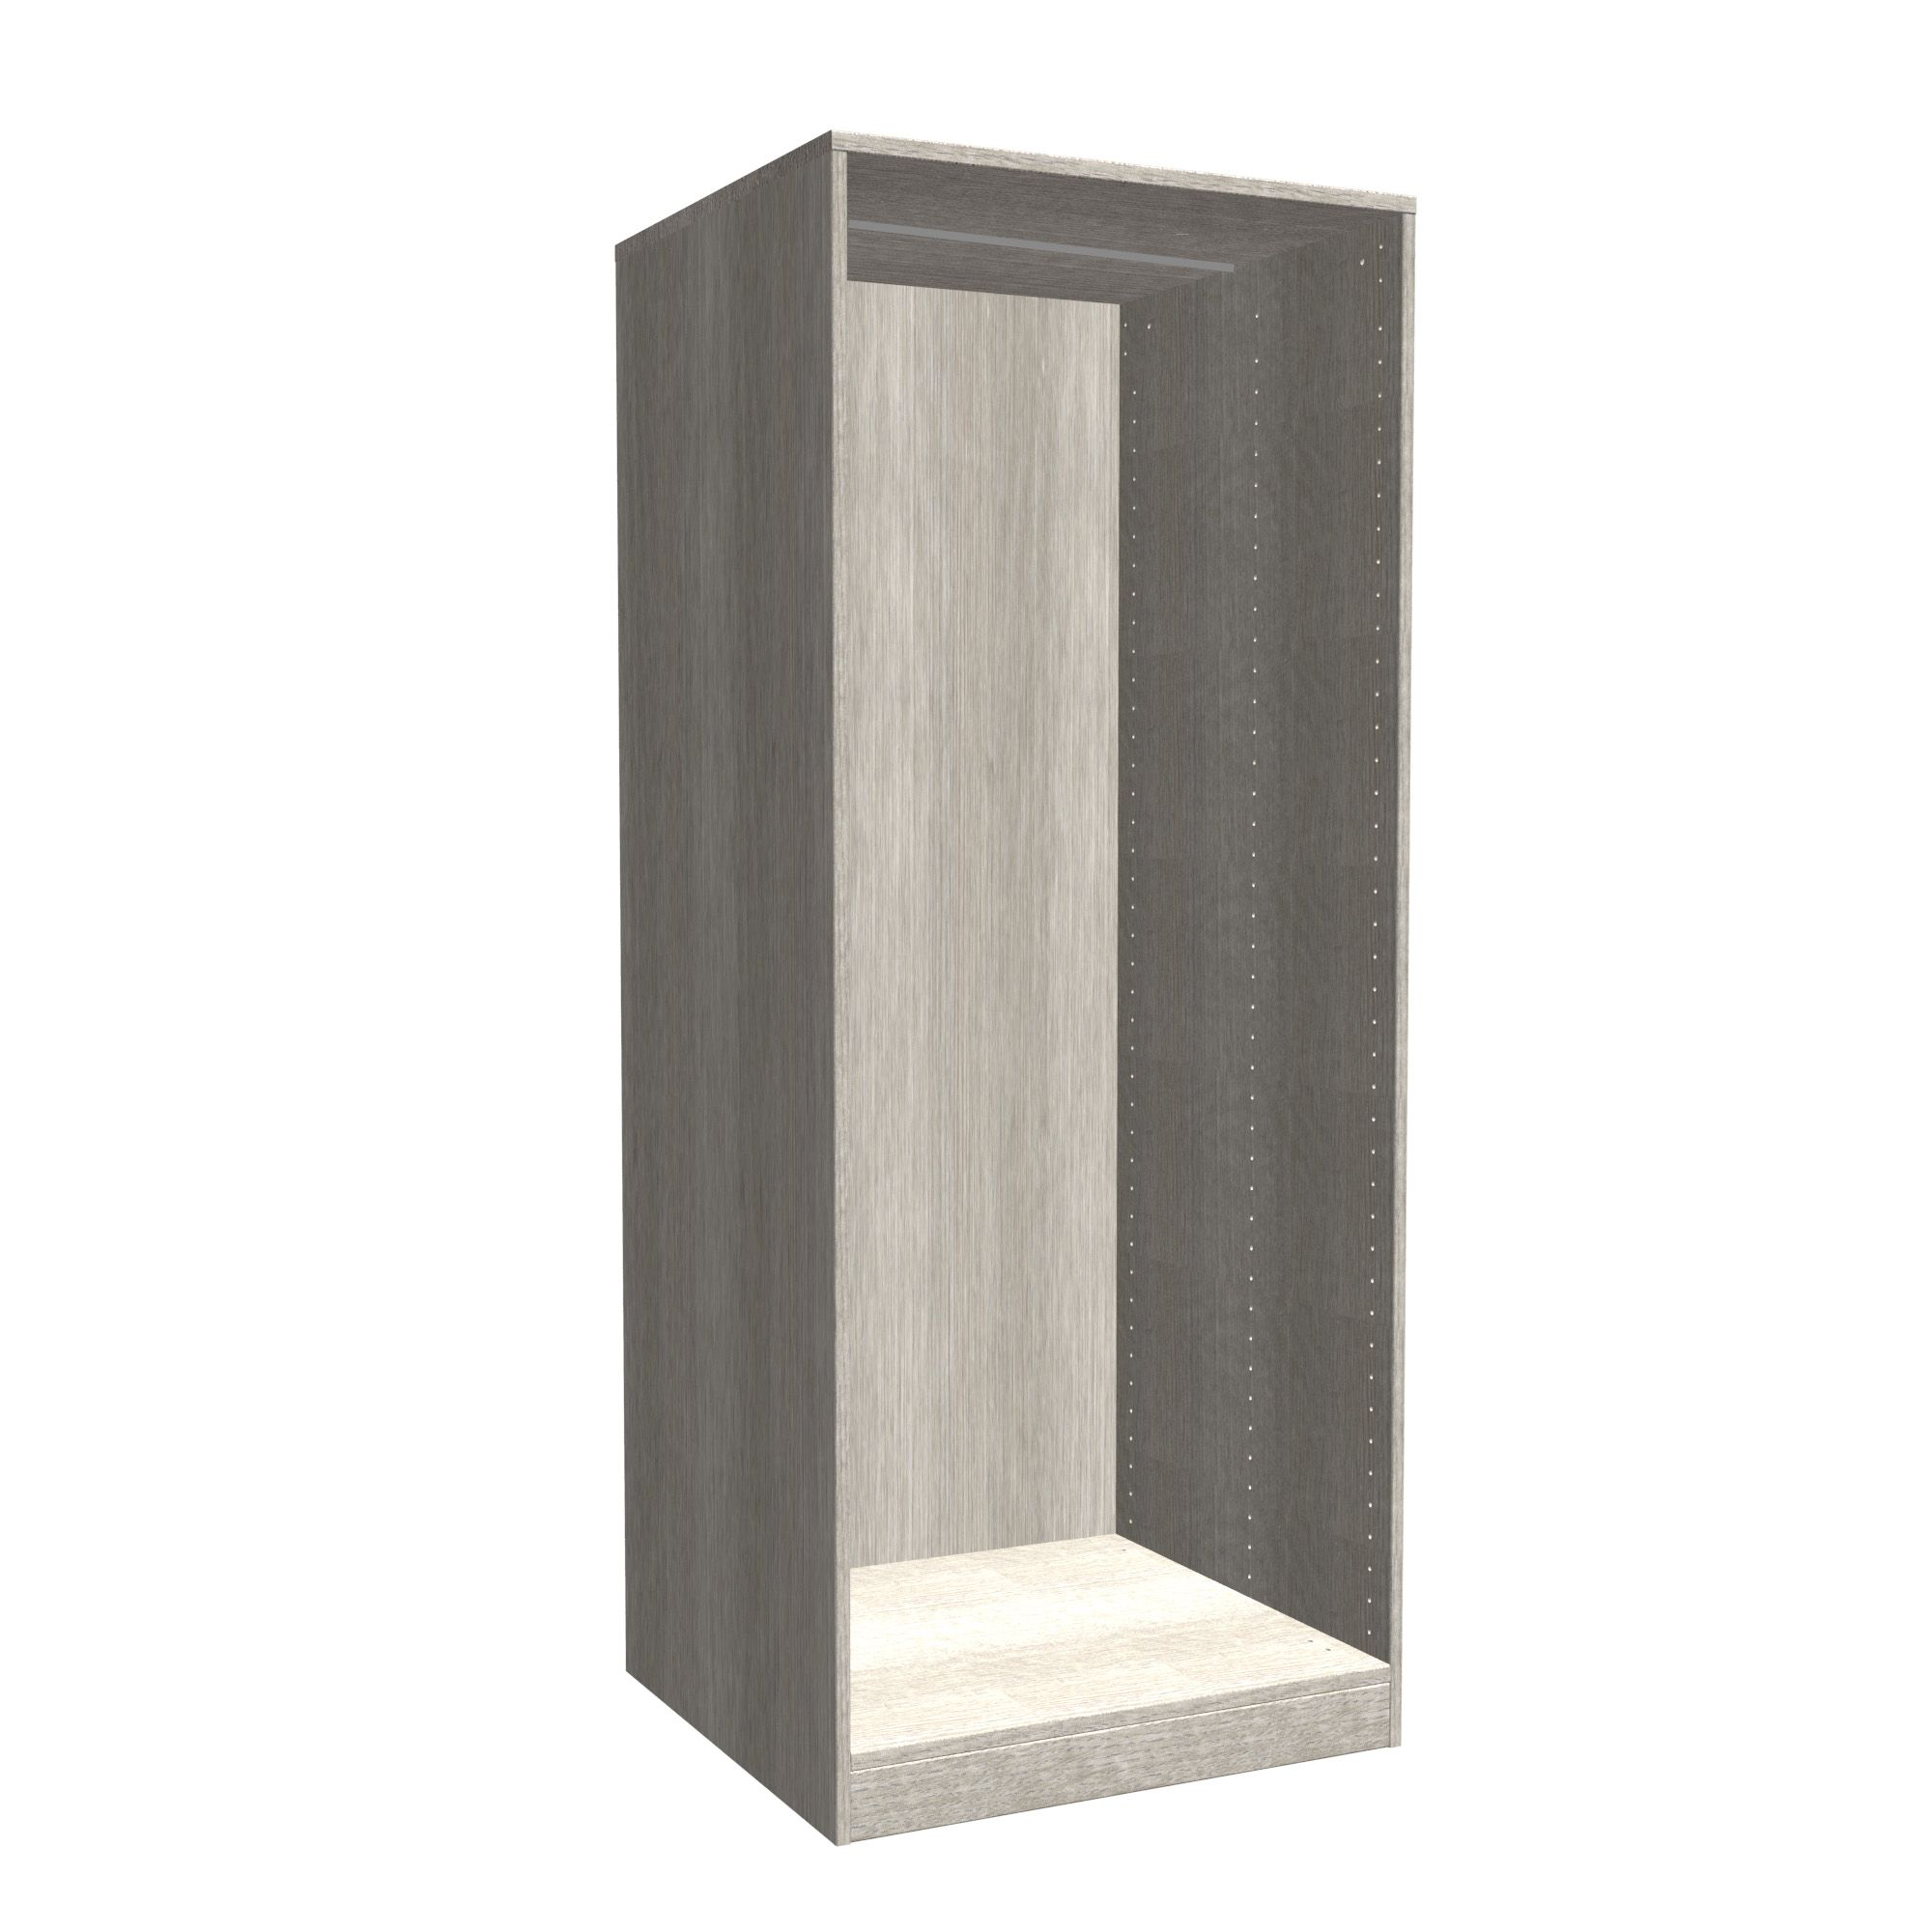 Oak Effect Kitchen Cabinets: Darwin Modular Grey Oak Effect Large Chest Cabinet (H